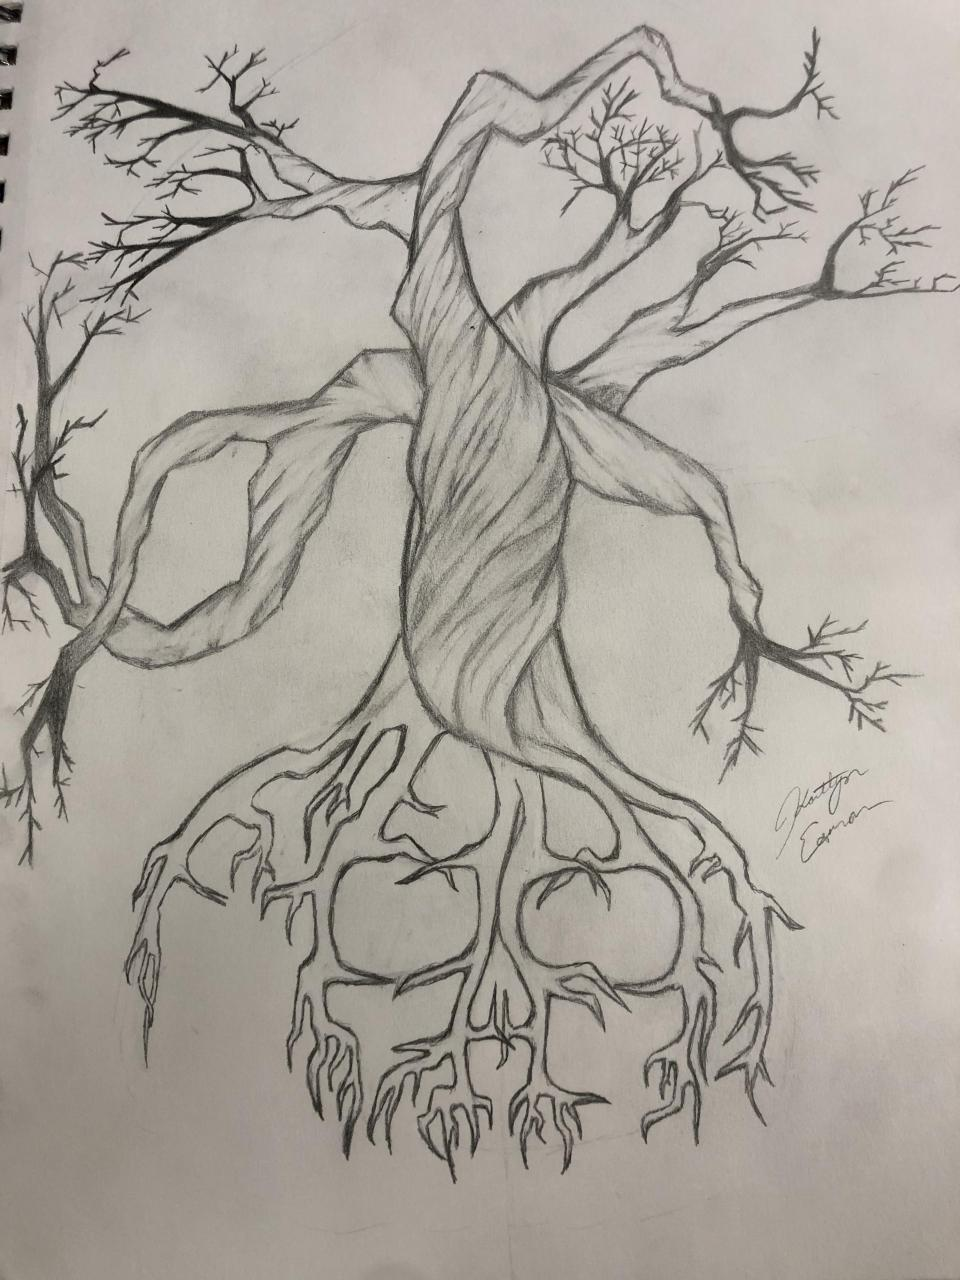 Finished the design for my dad's tree of life tattoo! I decided to stylize the roots to make a skull without being too obvious. I might go in and shade the roots up, but this is my idea for his tree of life tattoo.